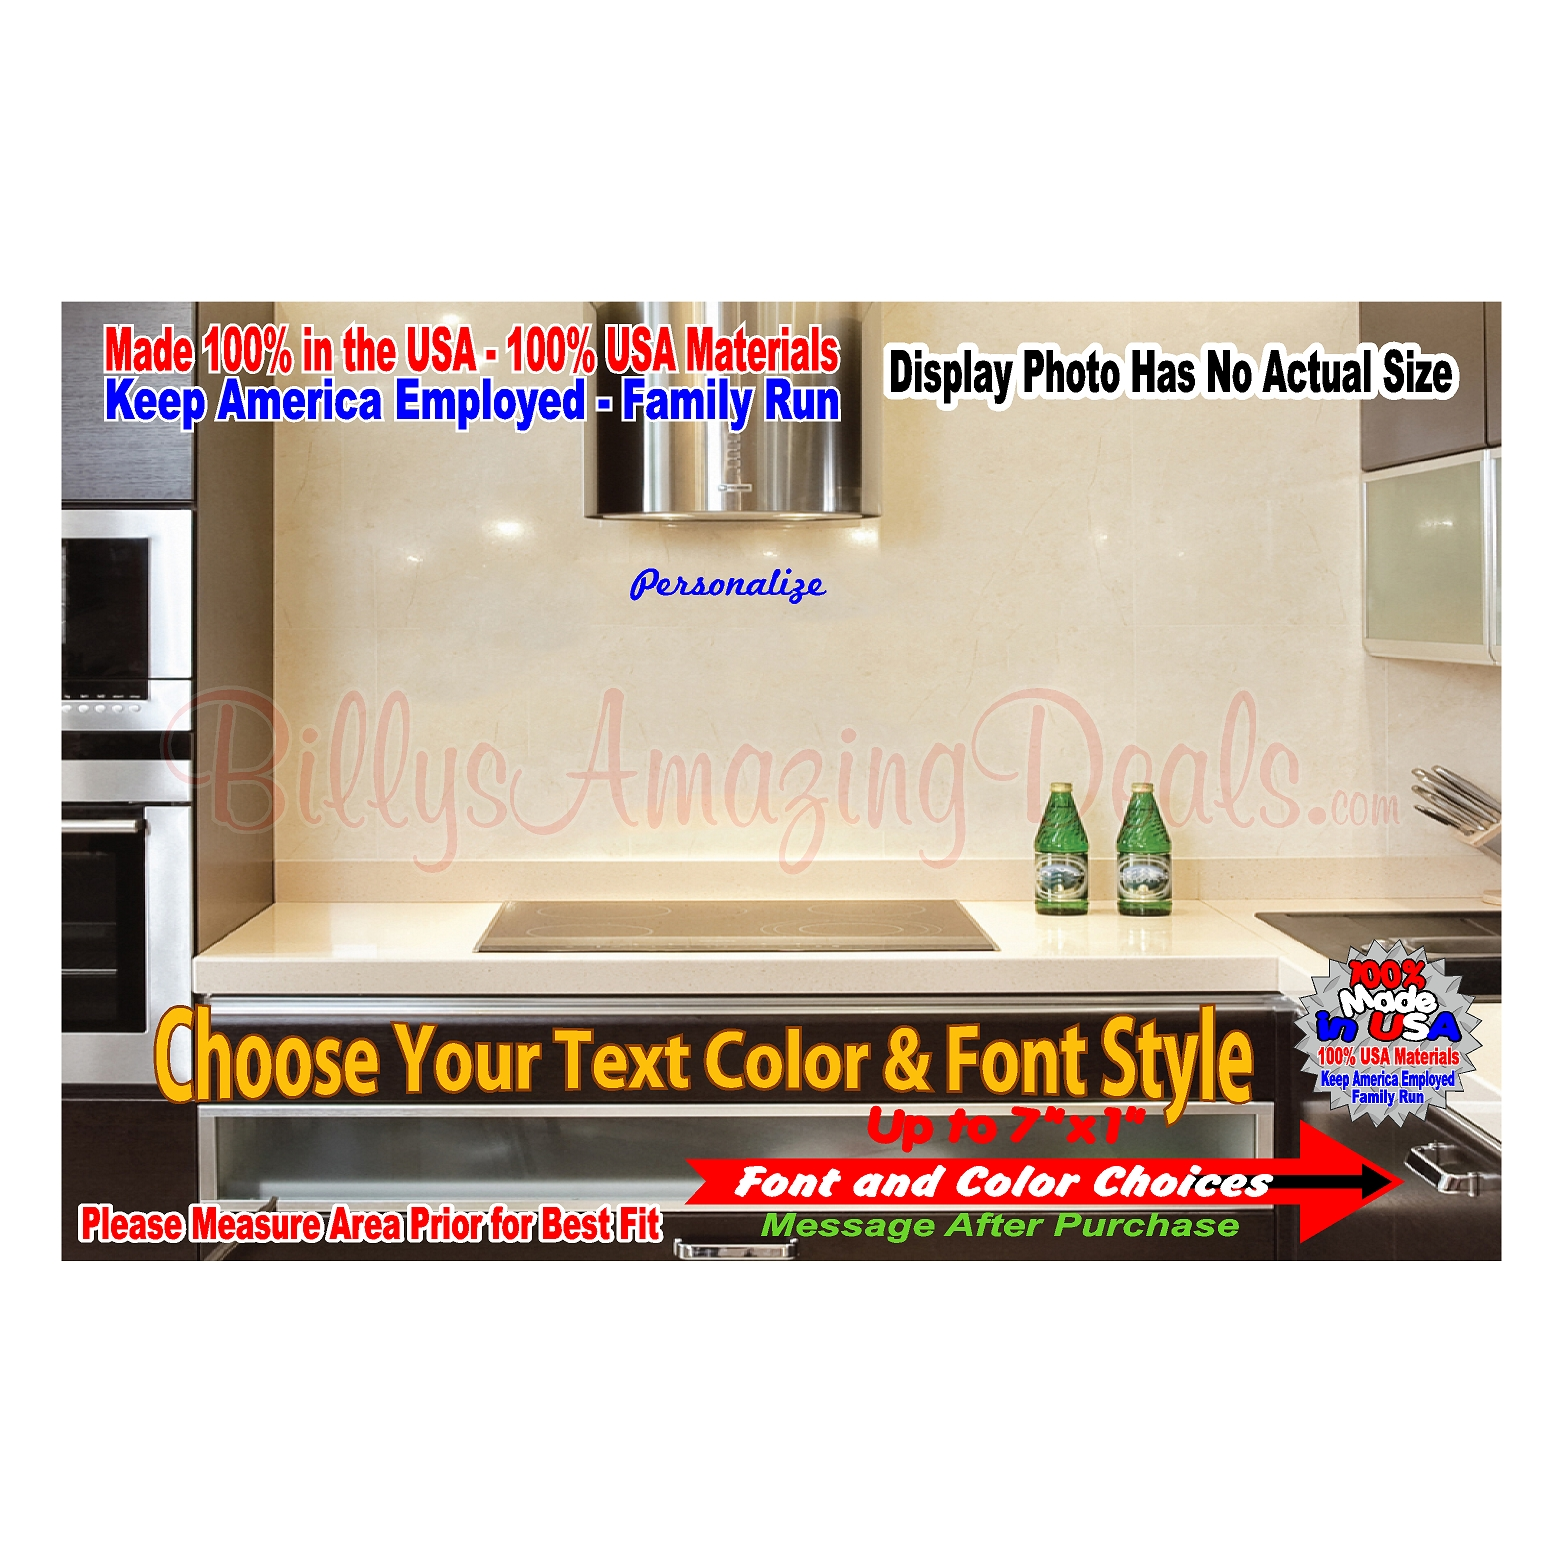 Details about 7 x 1 personalized custom text decal wall door glass bed room lettering sticker